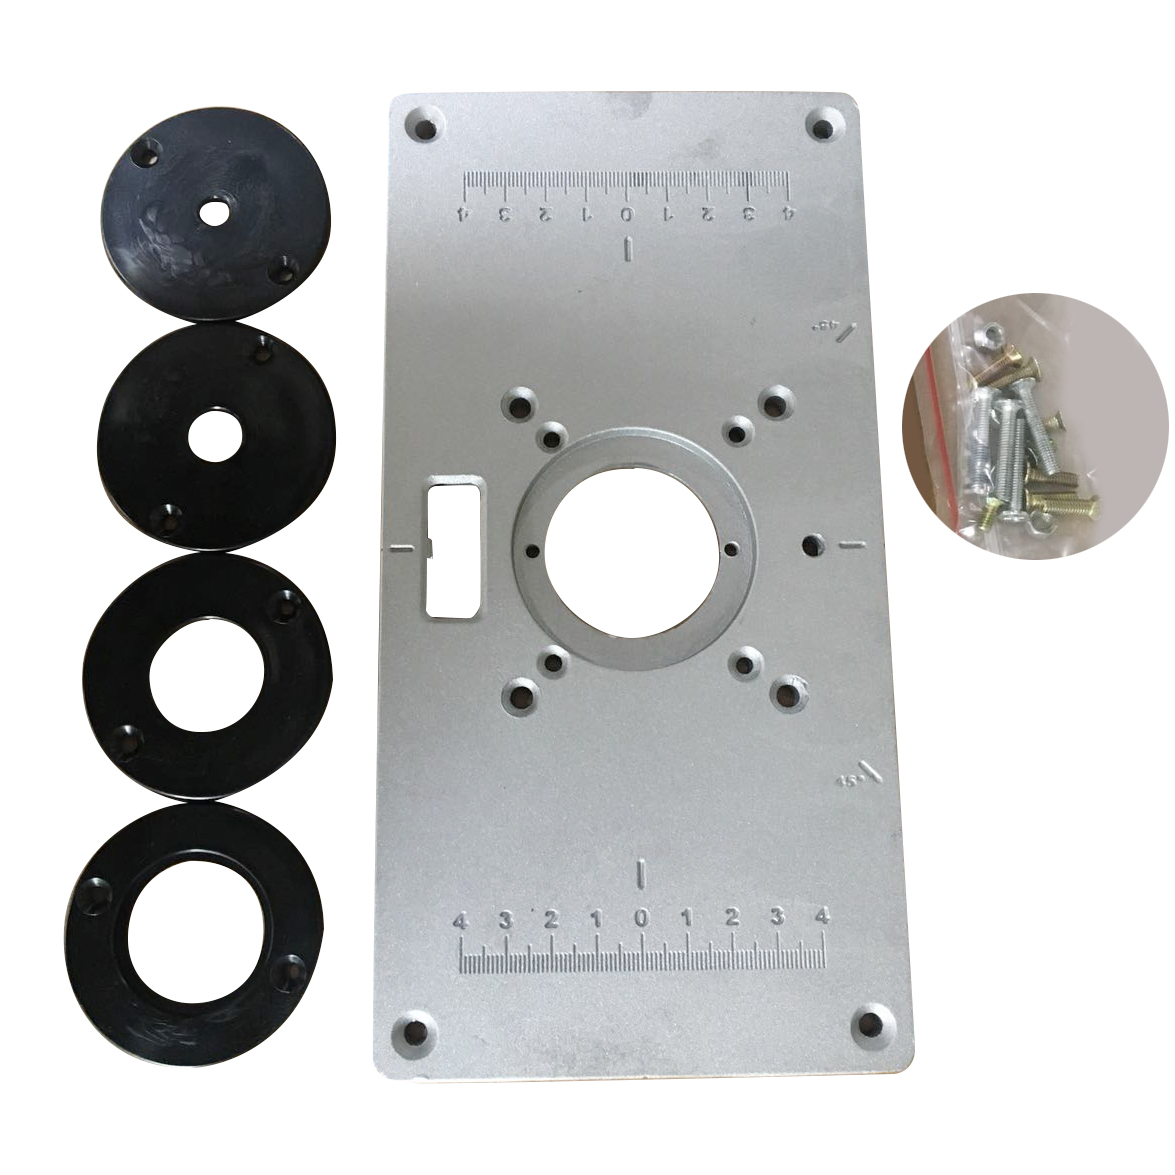 1pc/set 700C Aluminum Router Table Insert Plate For Woodworking Benches with 4pcs Insert Rings Engrving Machine vu table driven plate replacement level bile machine chassis before ta7318p amplifiers